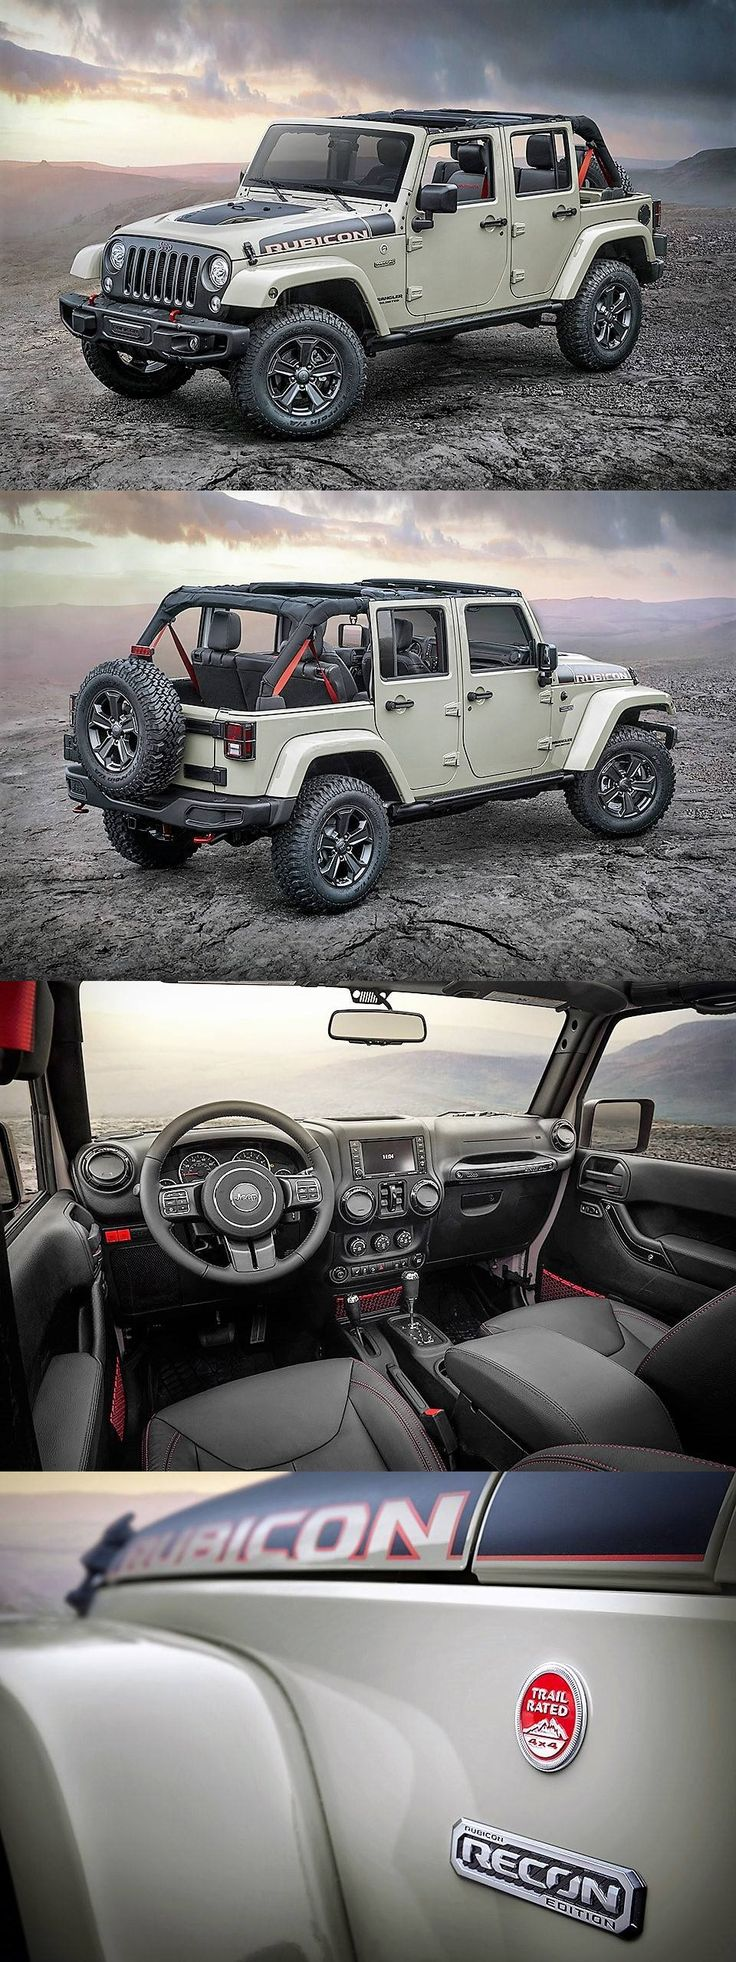 Jeep Wrangler Rubicon Recon Edition